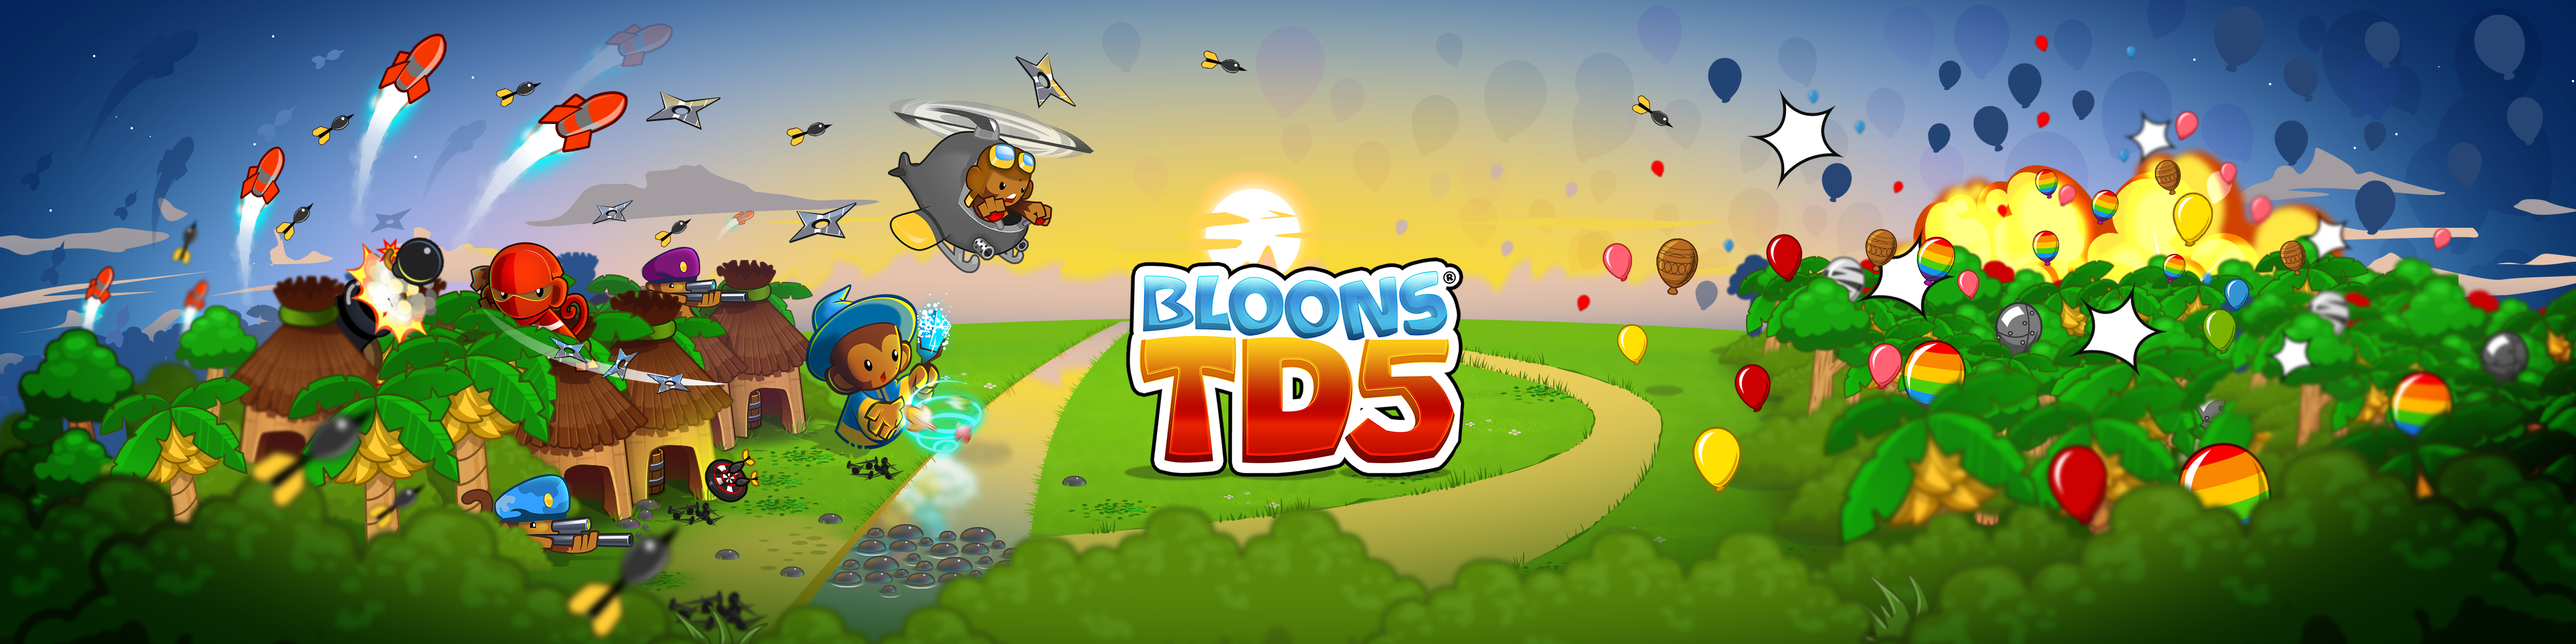 Bloons TD 5 - Revenue & Download estimates - Apple App Store - US